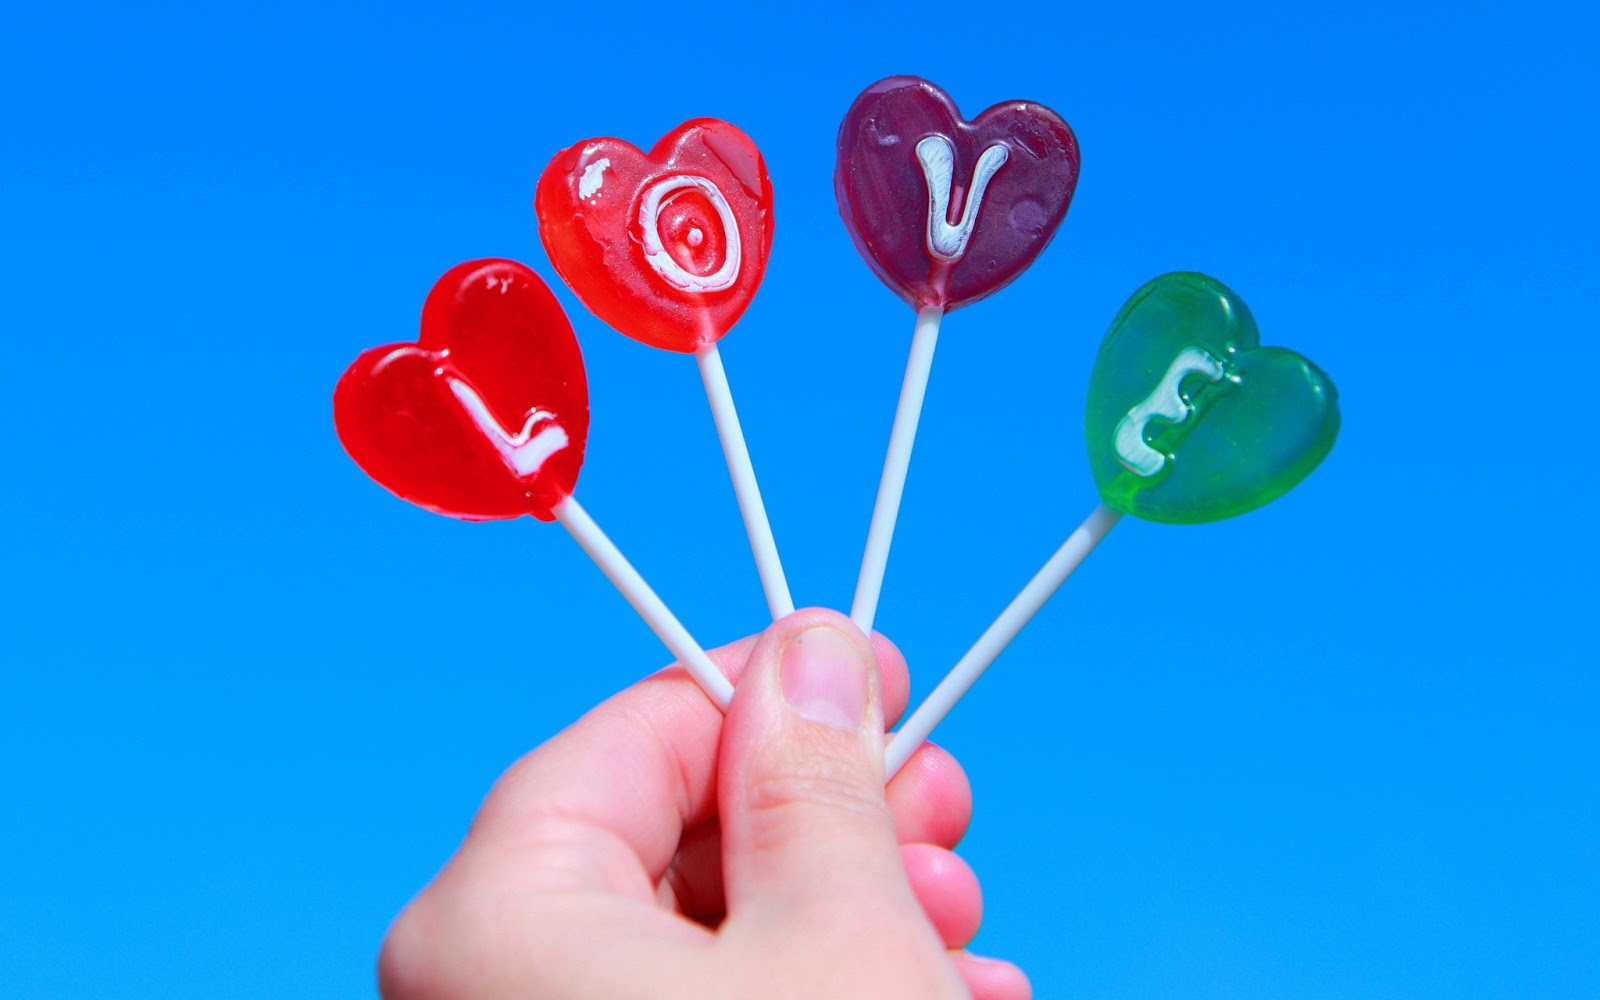 HD Wallpaper Lollipop Love